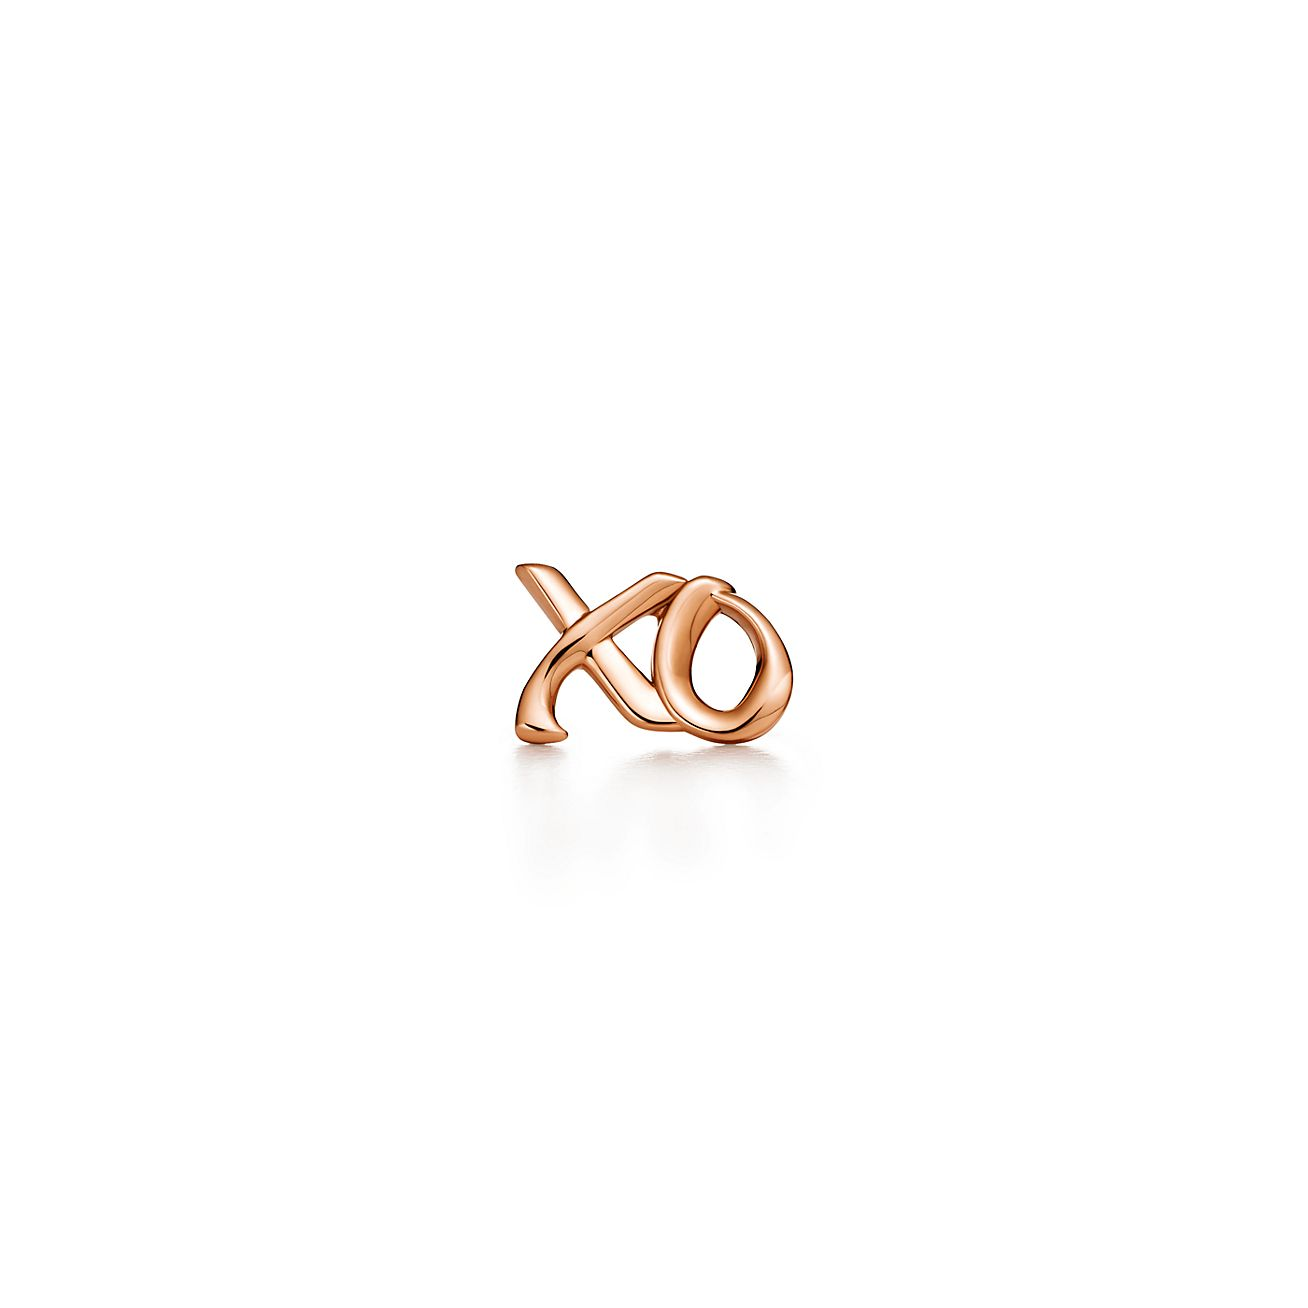 Palomas Graffiti love & kisses single earring in 18k rose gold Tiffany & Co. WGGsCZP